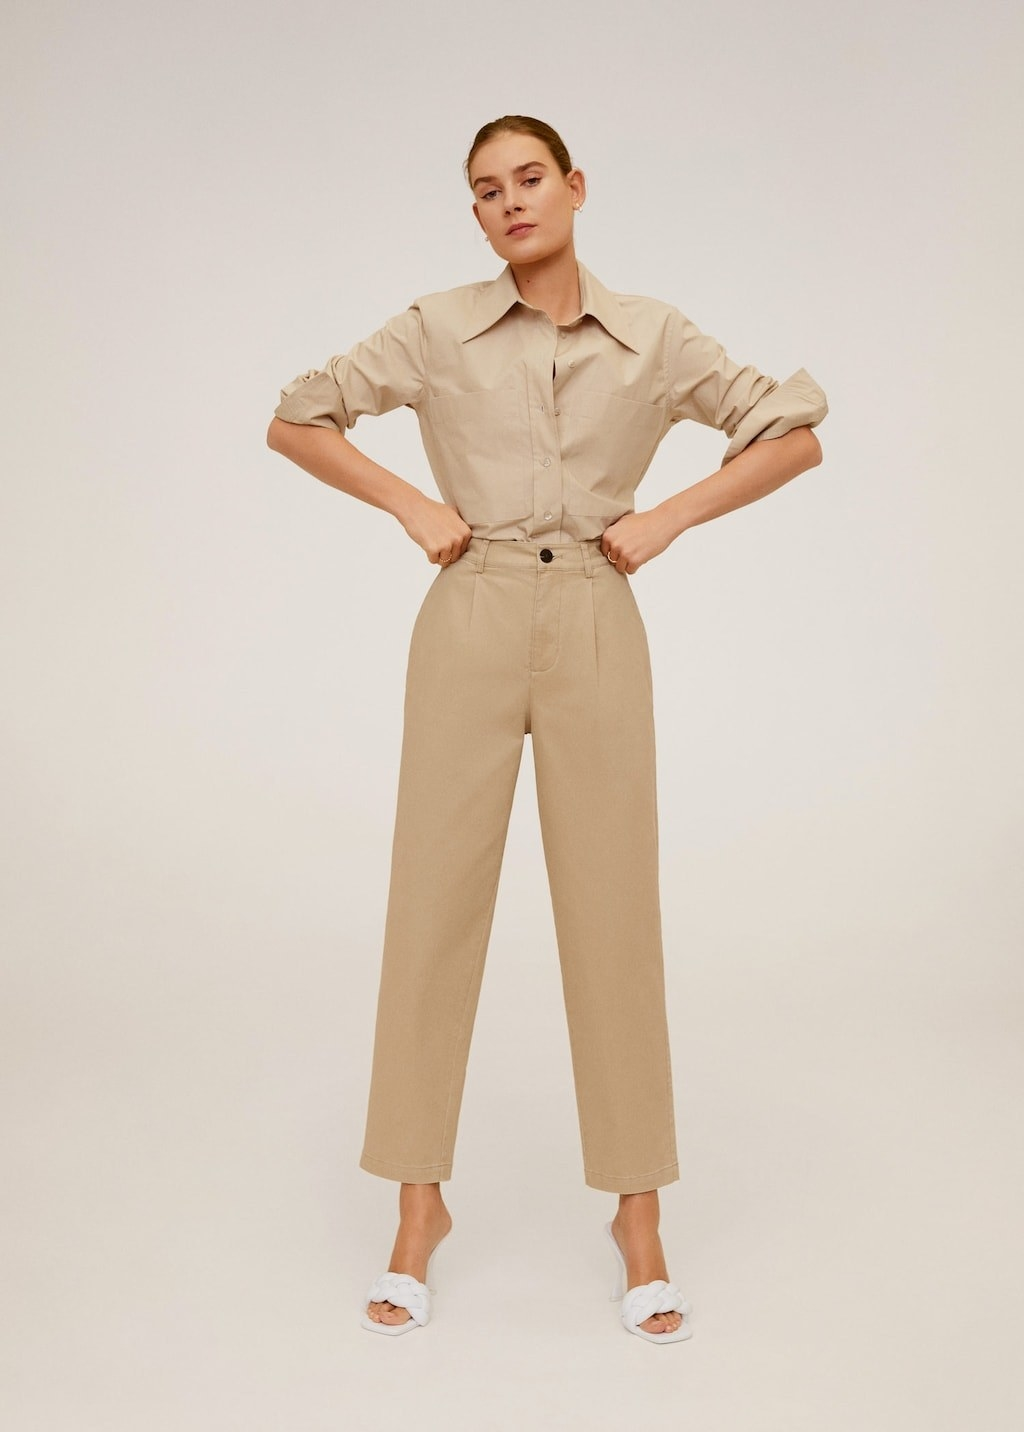 Model wearing trousers in a khaki color that hit at the ankles